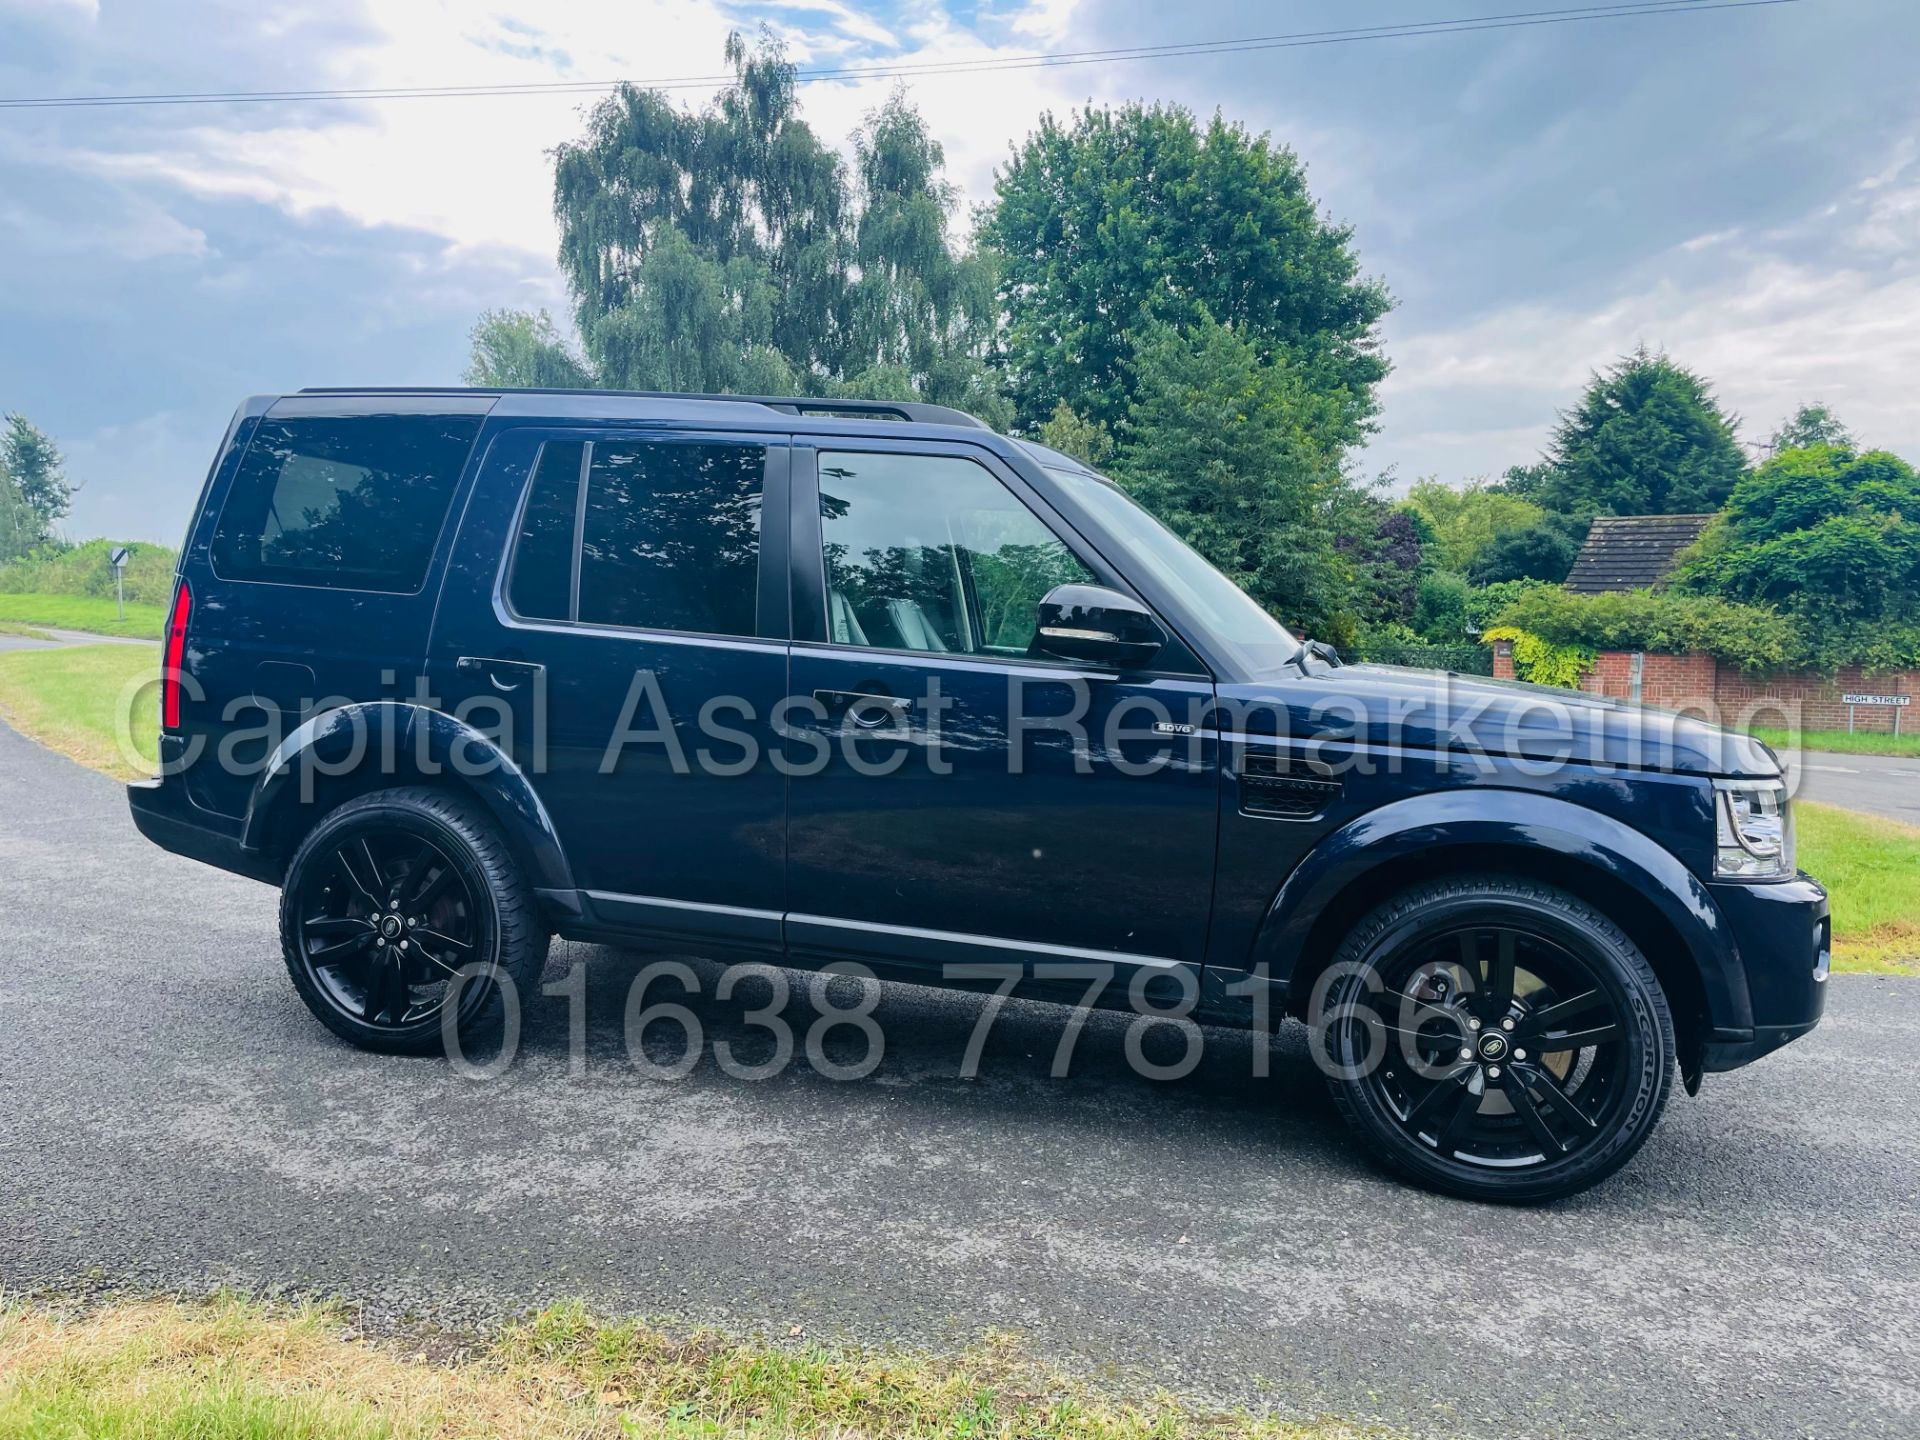 LAND ROVER DISCOVERY 4 *HSE* 7 SEATER SUV (2014 - NEW MODEL) '3.0 SDV6 - 255 BHP - 8 SPEED AUTO' - Image 10 of 61